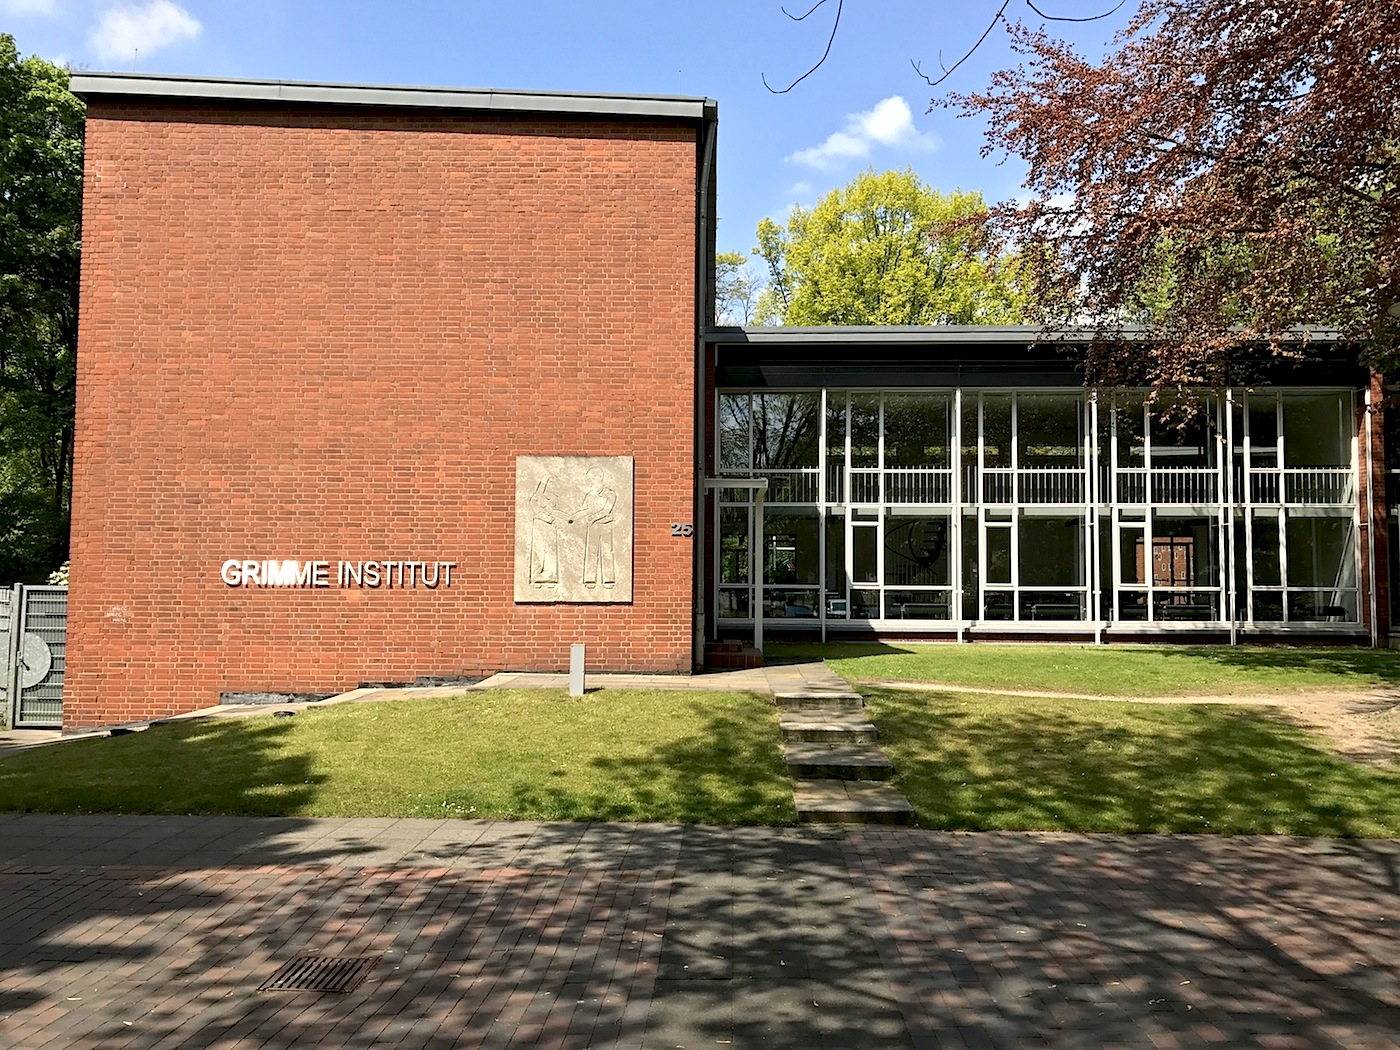 Grimme Institute. ... at the same time the most modern adult education centre of the Federal Republic of Germany.